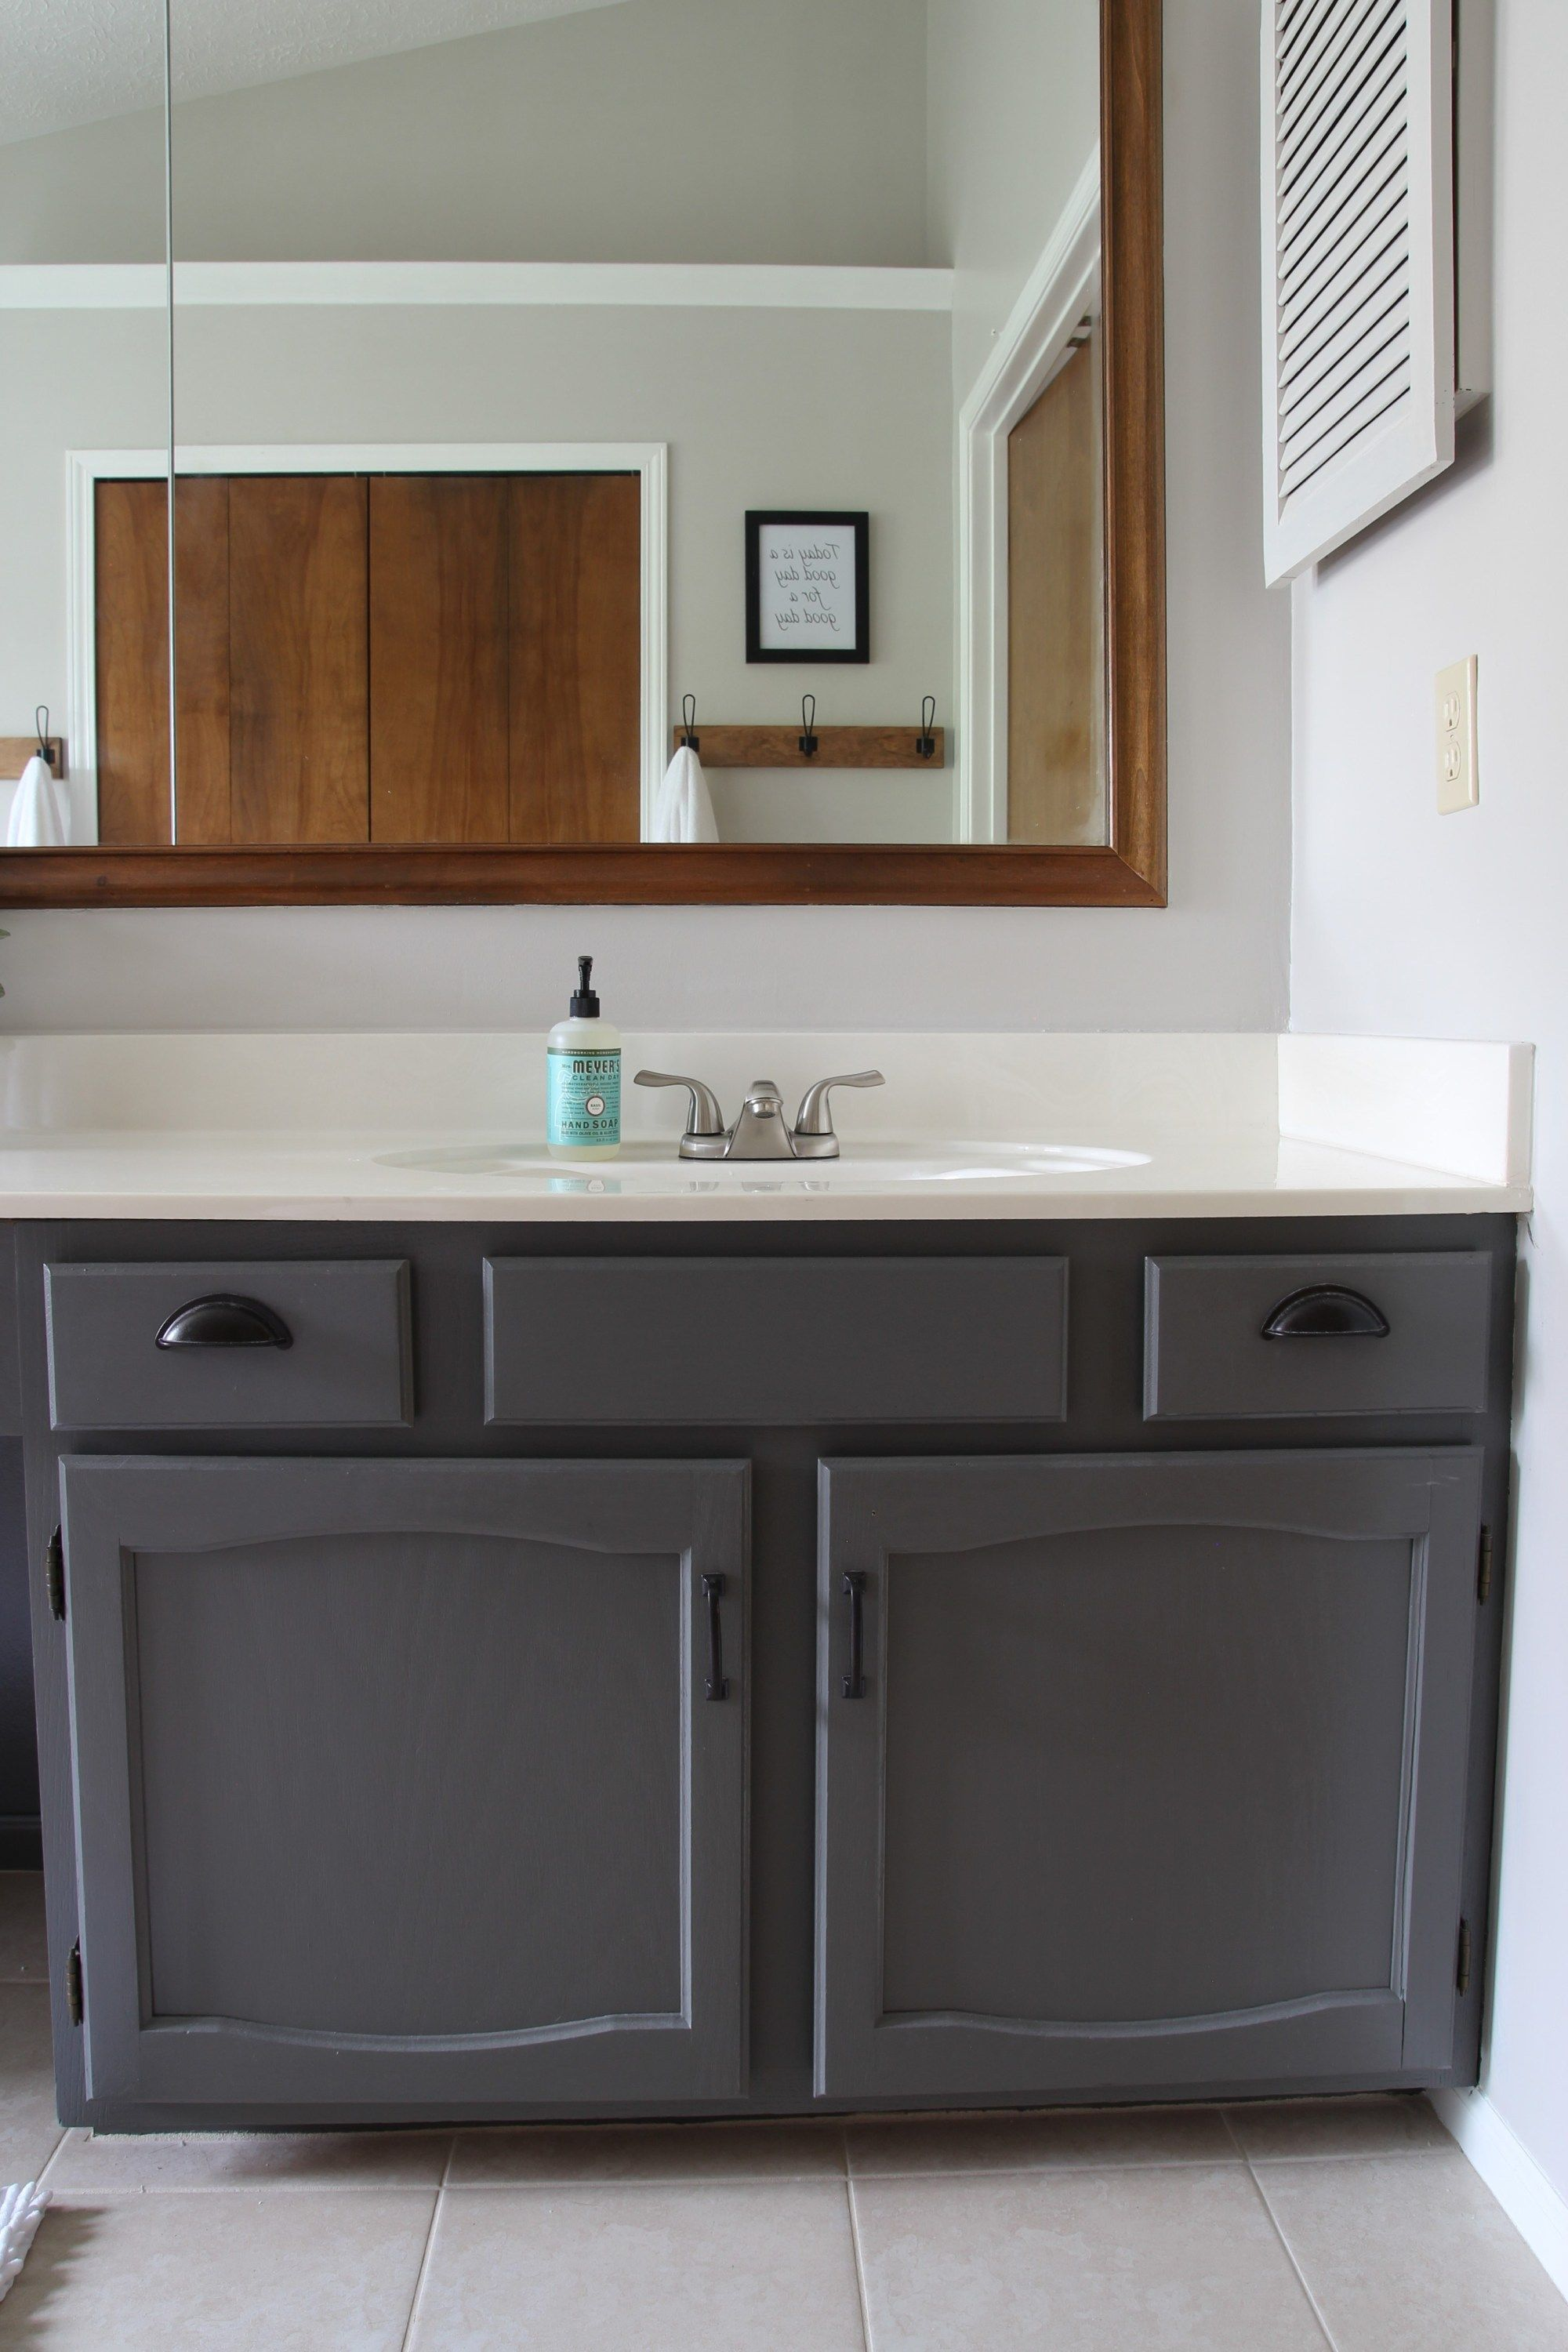 How to Paint Dated Oak Cabinets | Oak bathroom cabinets ...